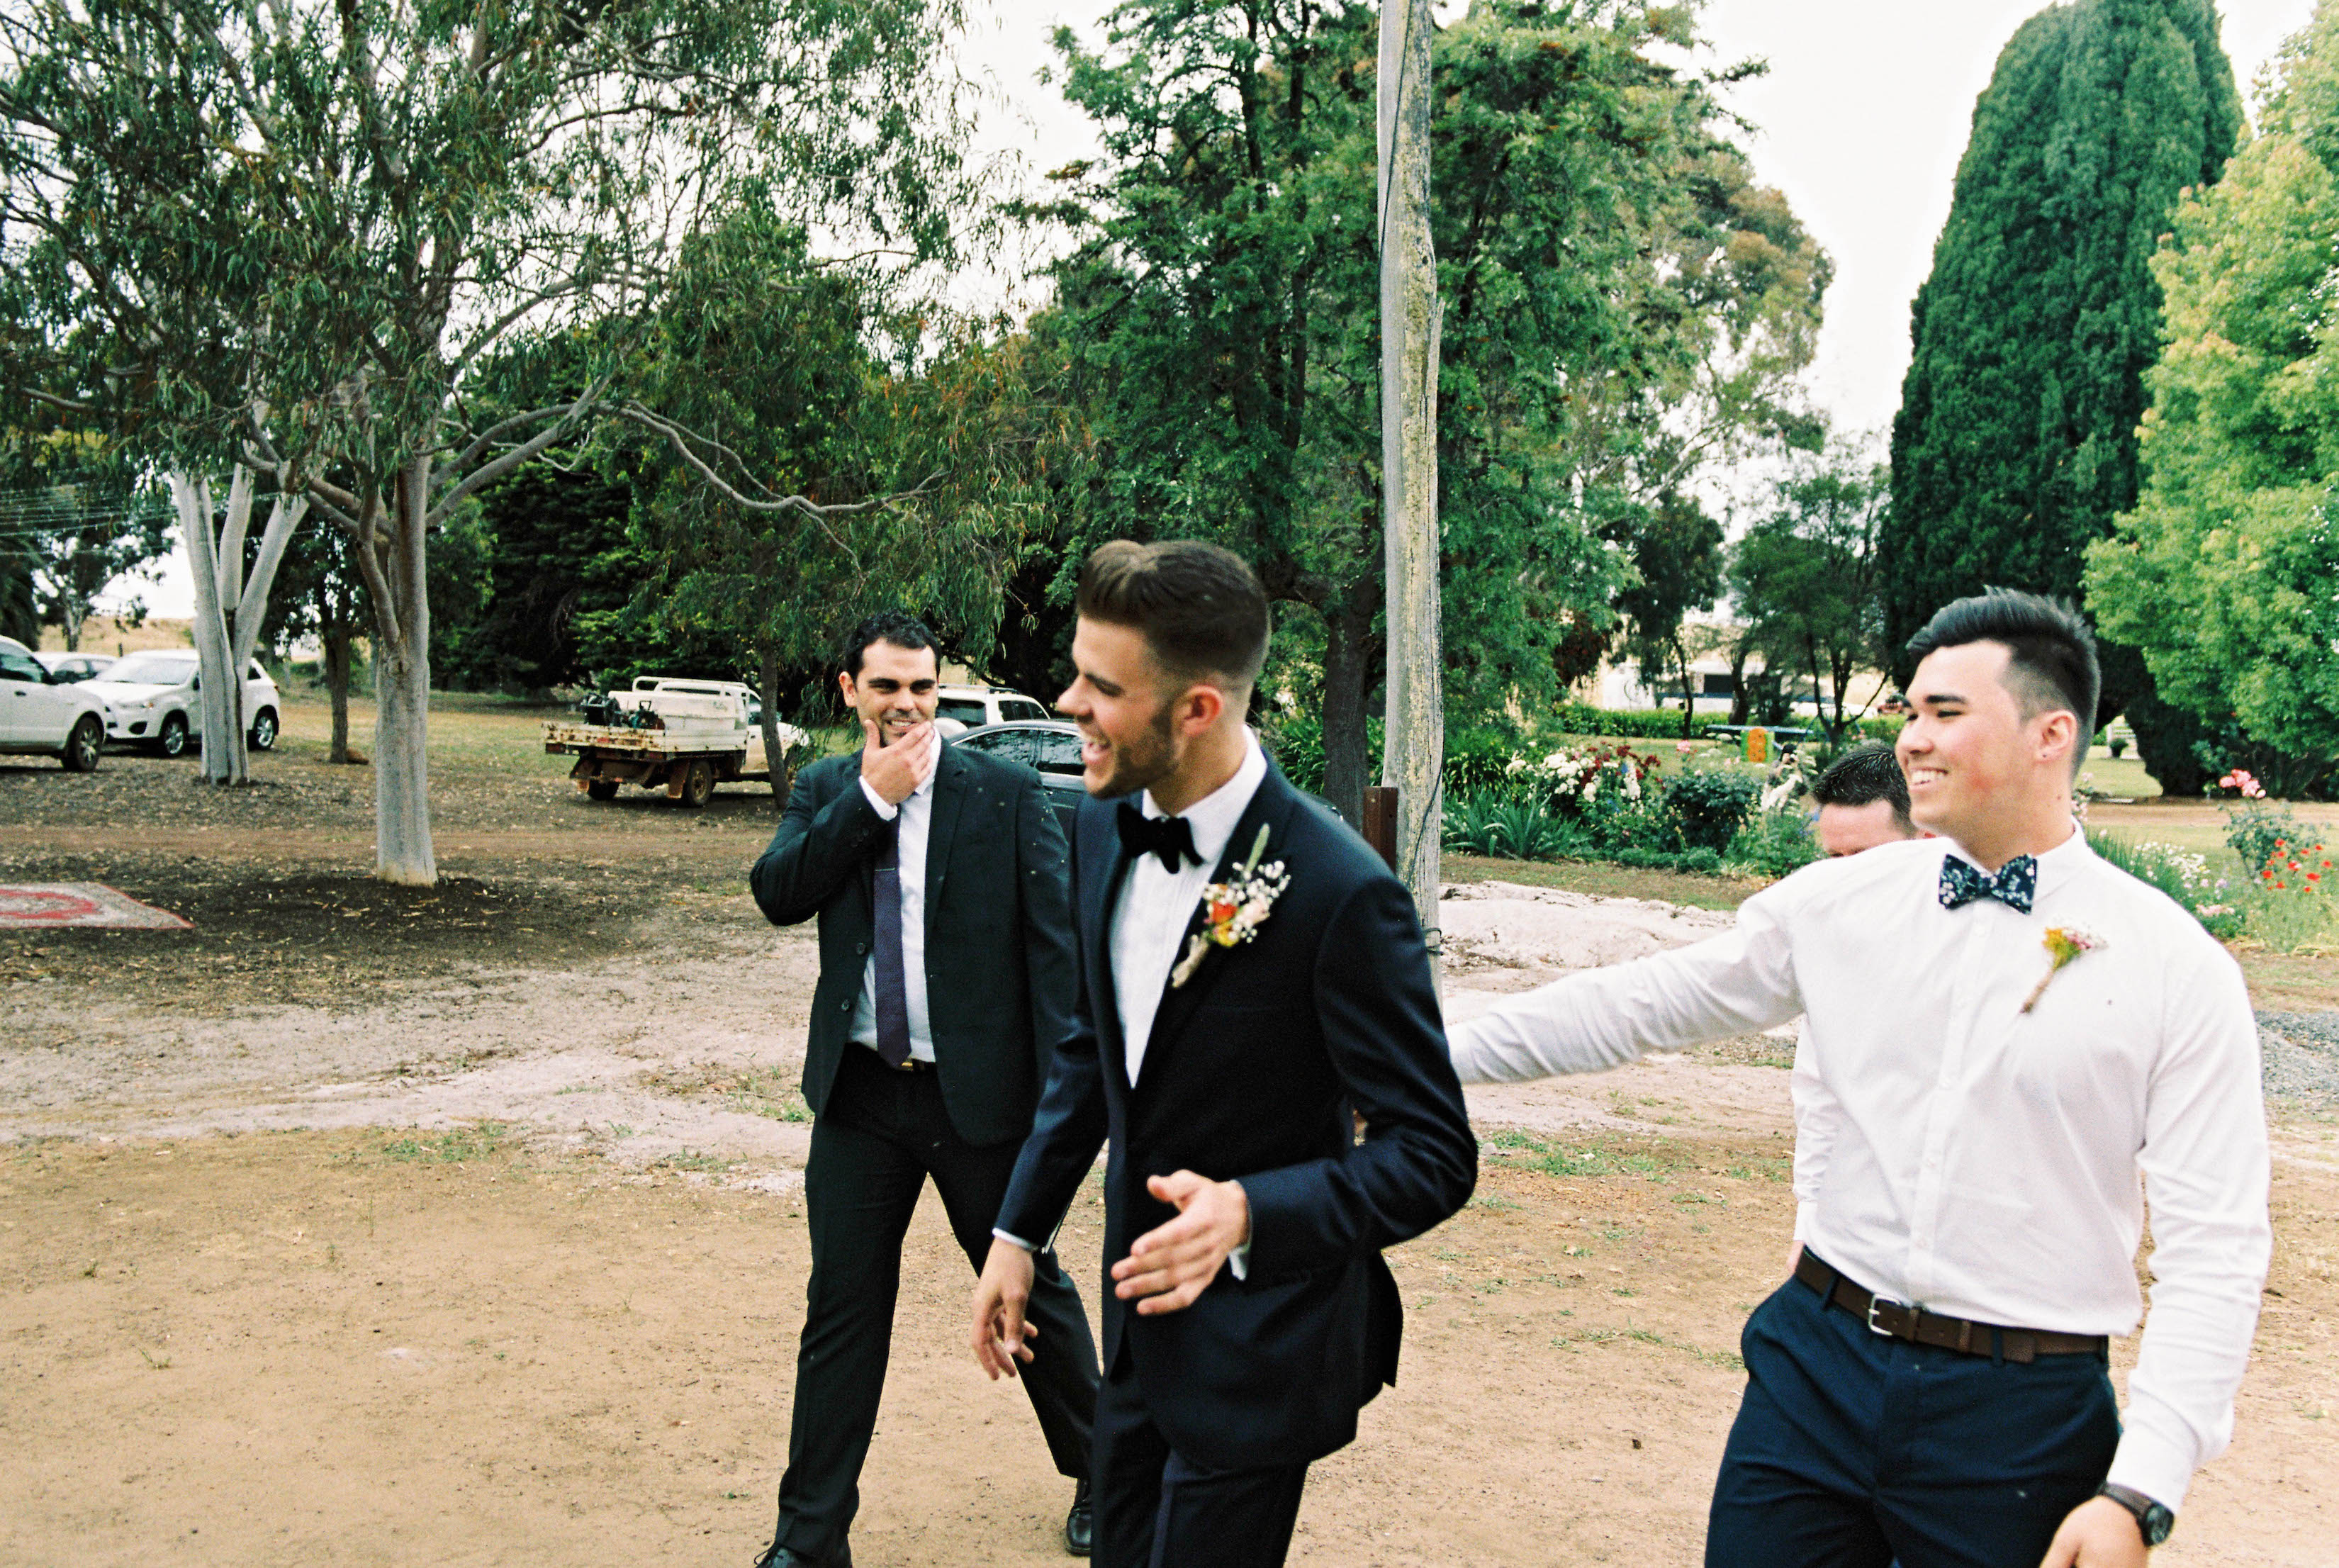 A photo of the groom and his groomsmen laughing on the way to his Down South Shearing Shed Wedding Ceremony